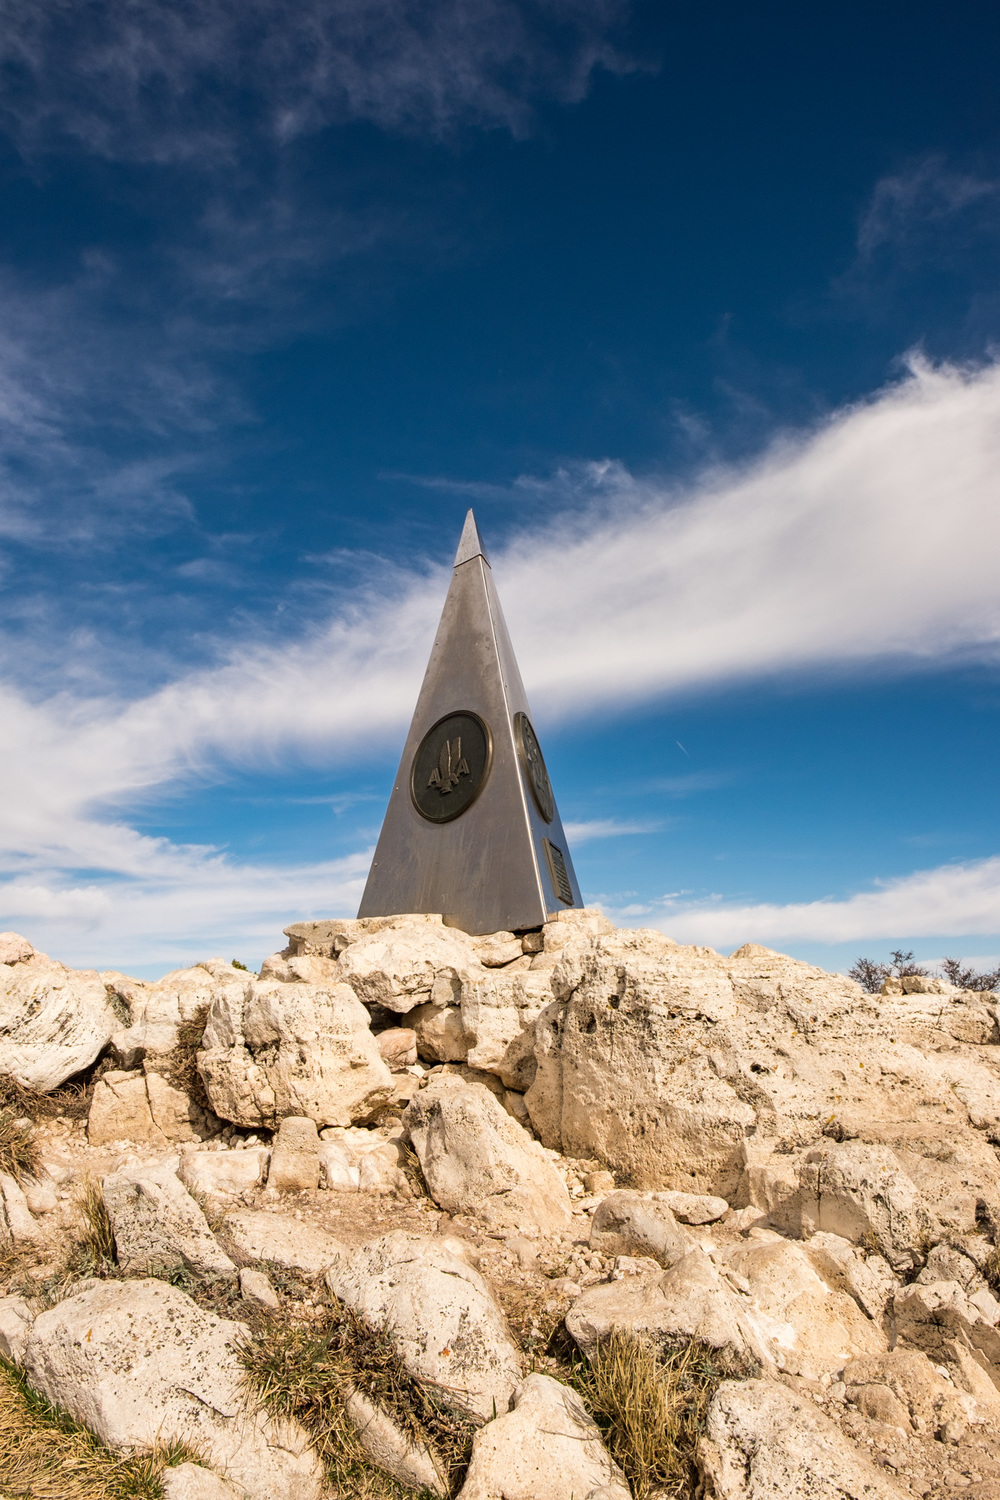 The pinnacle point on Texas' highest peak.